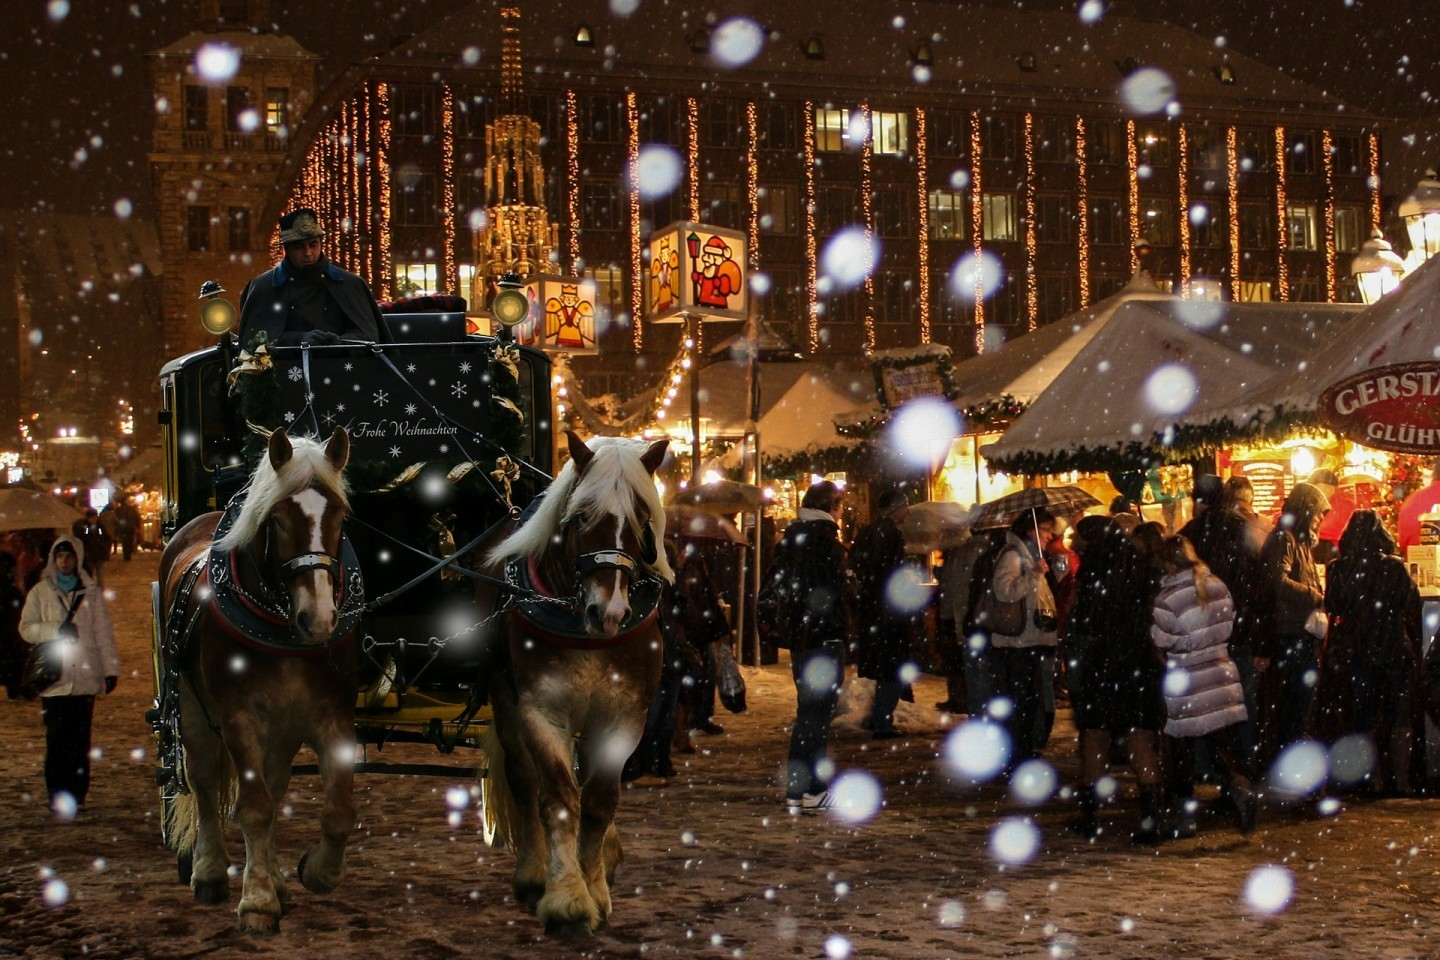 Horse carriage being drawn during the winter. A snowy wonderland.